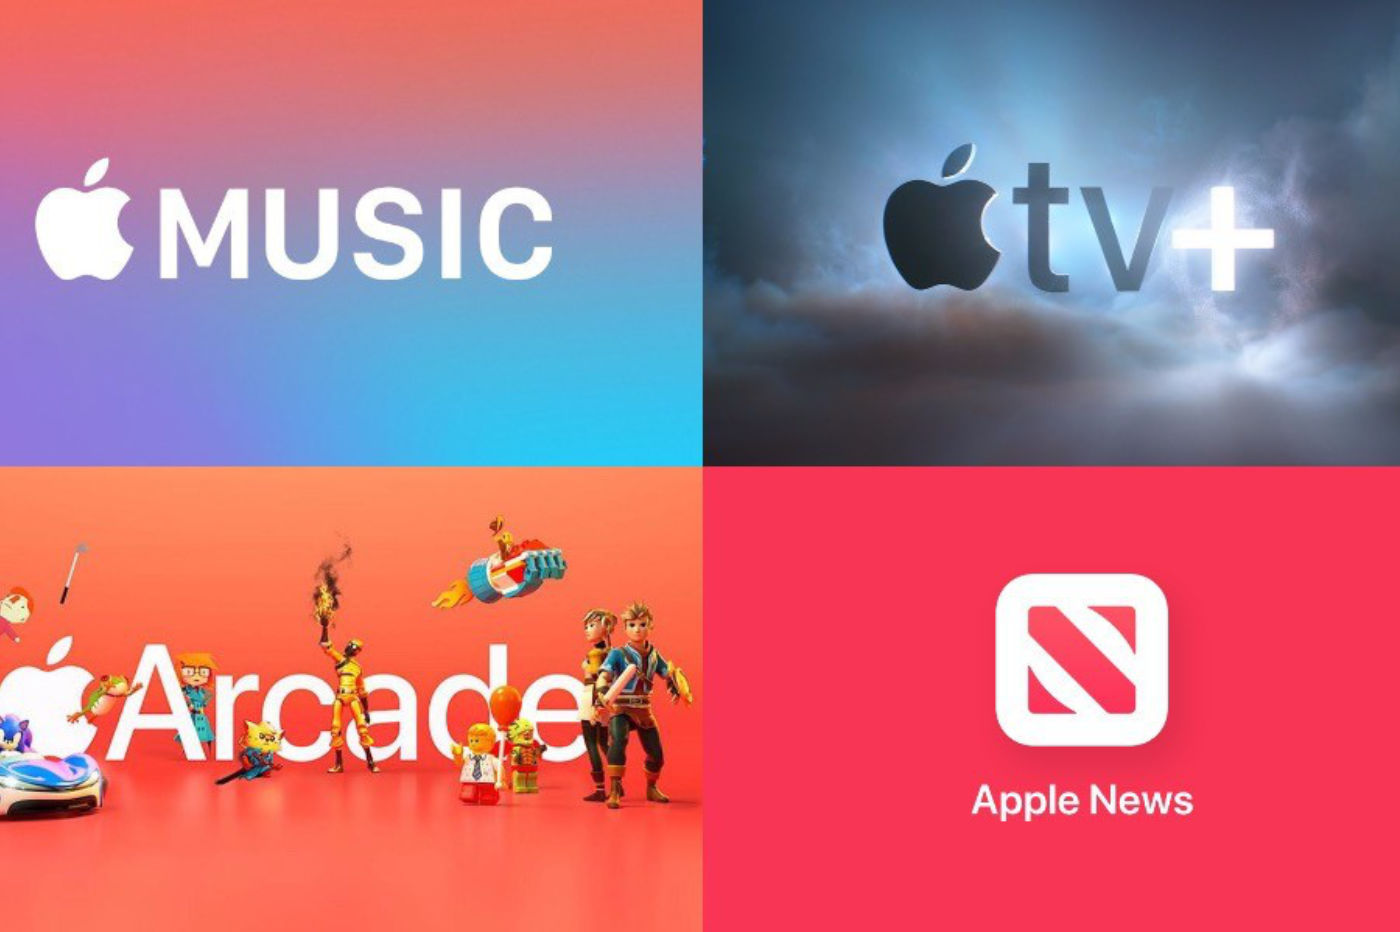 Les services Apple, Apple Music, Arcade, News et TV+